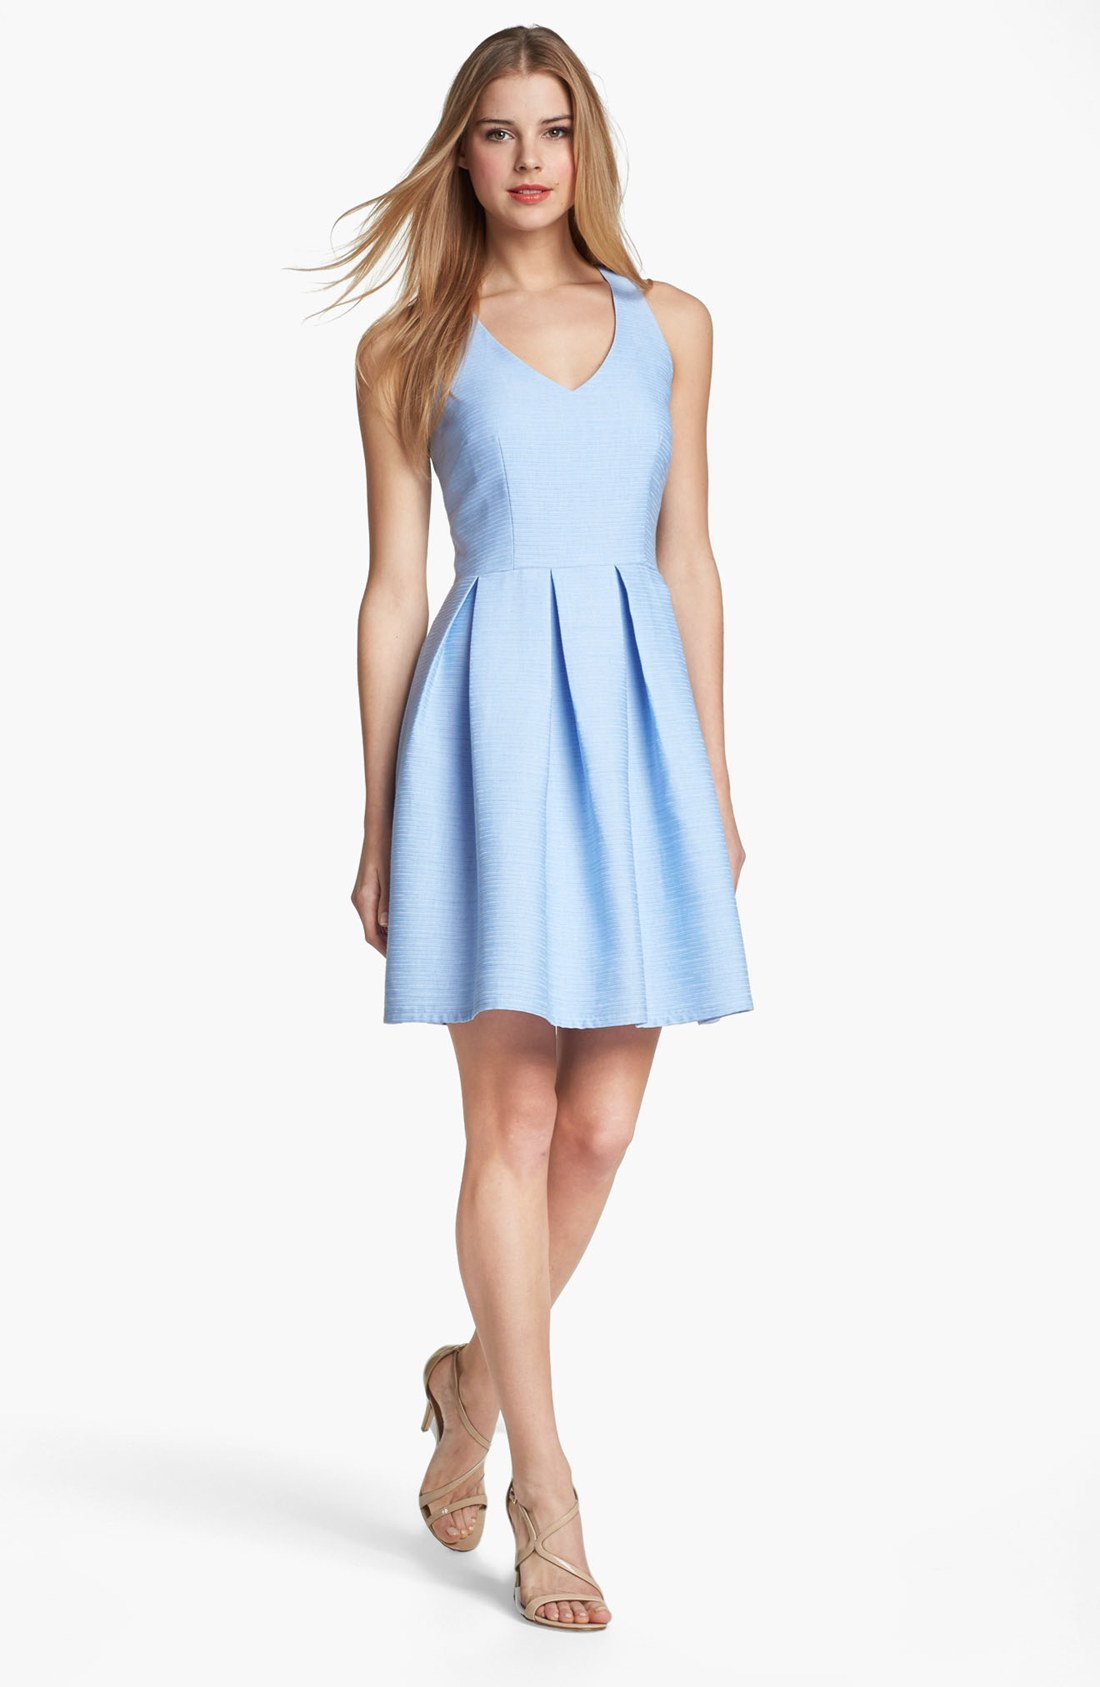 Taylor dresses Cutout Detail Fit Flare Dress in Blue ...